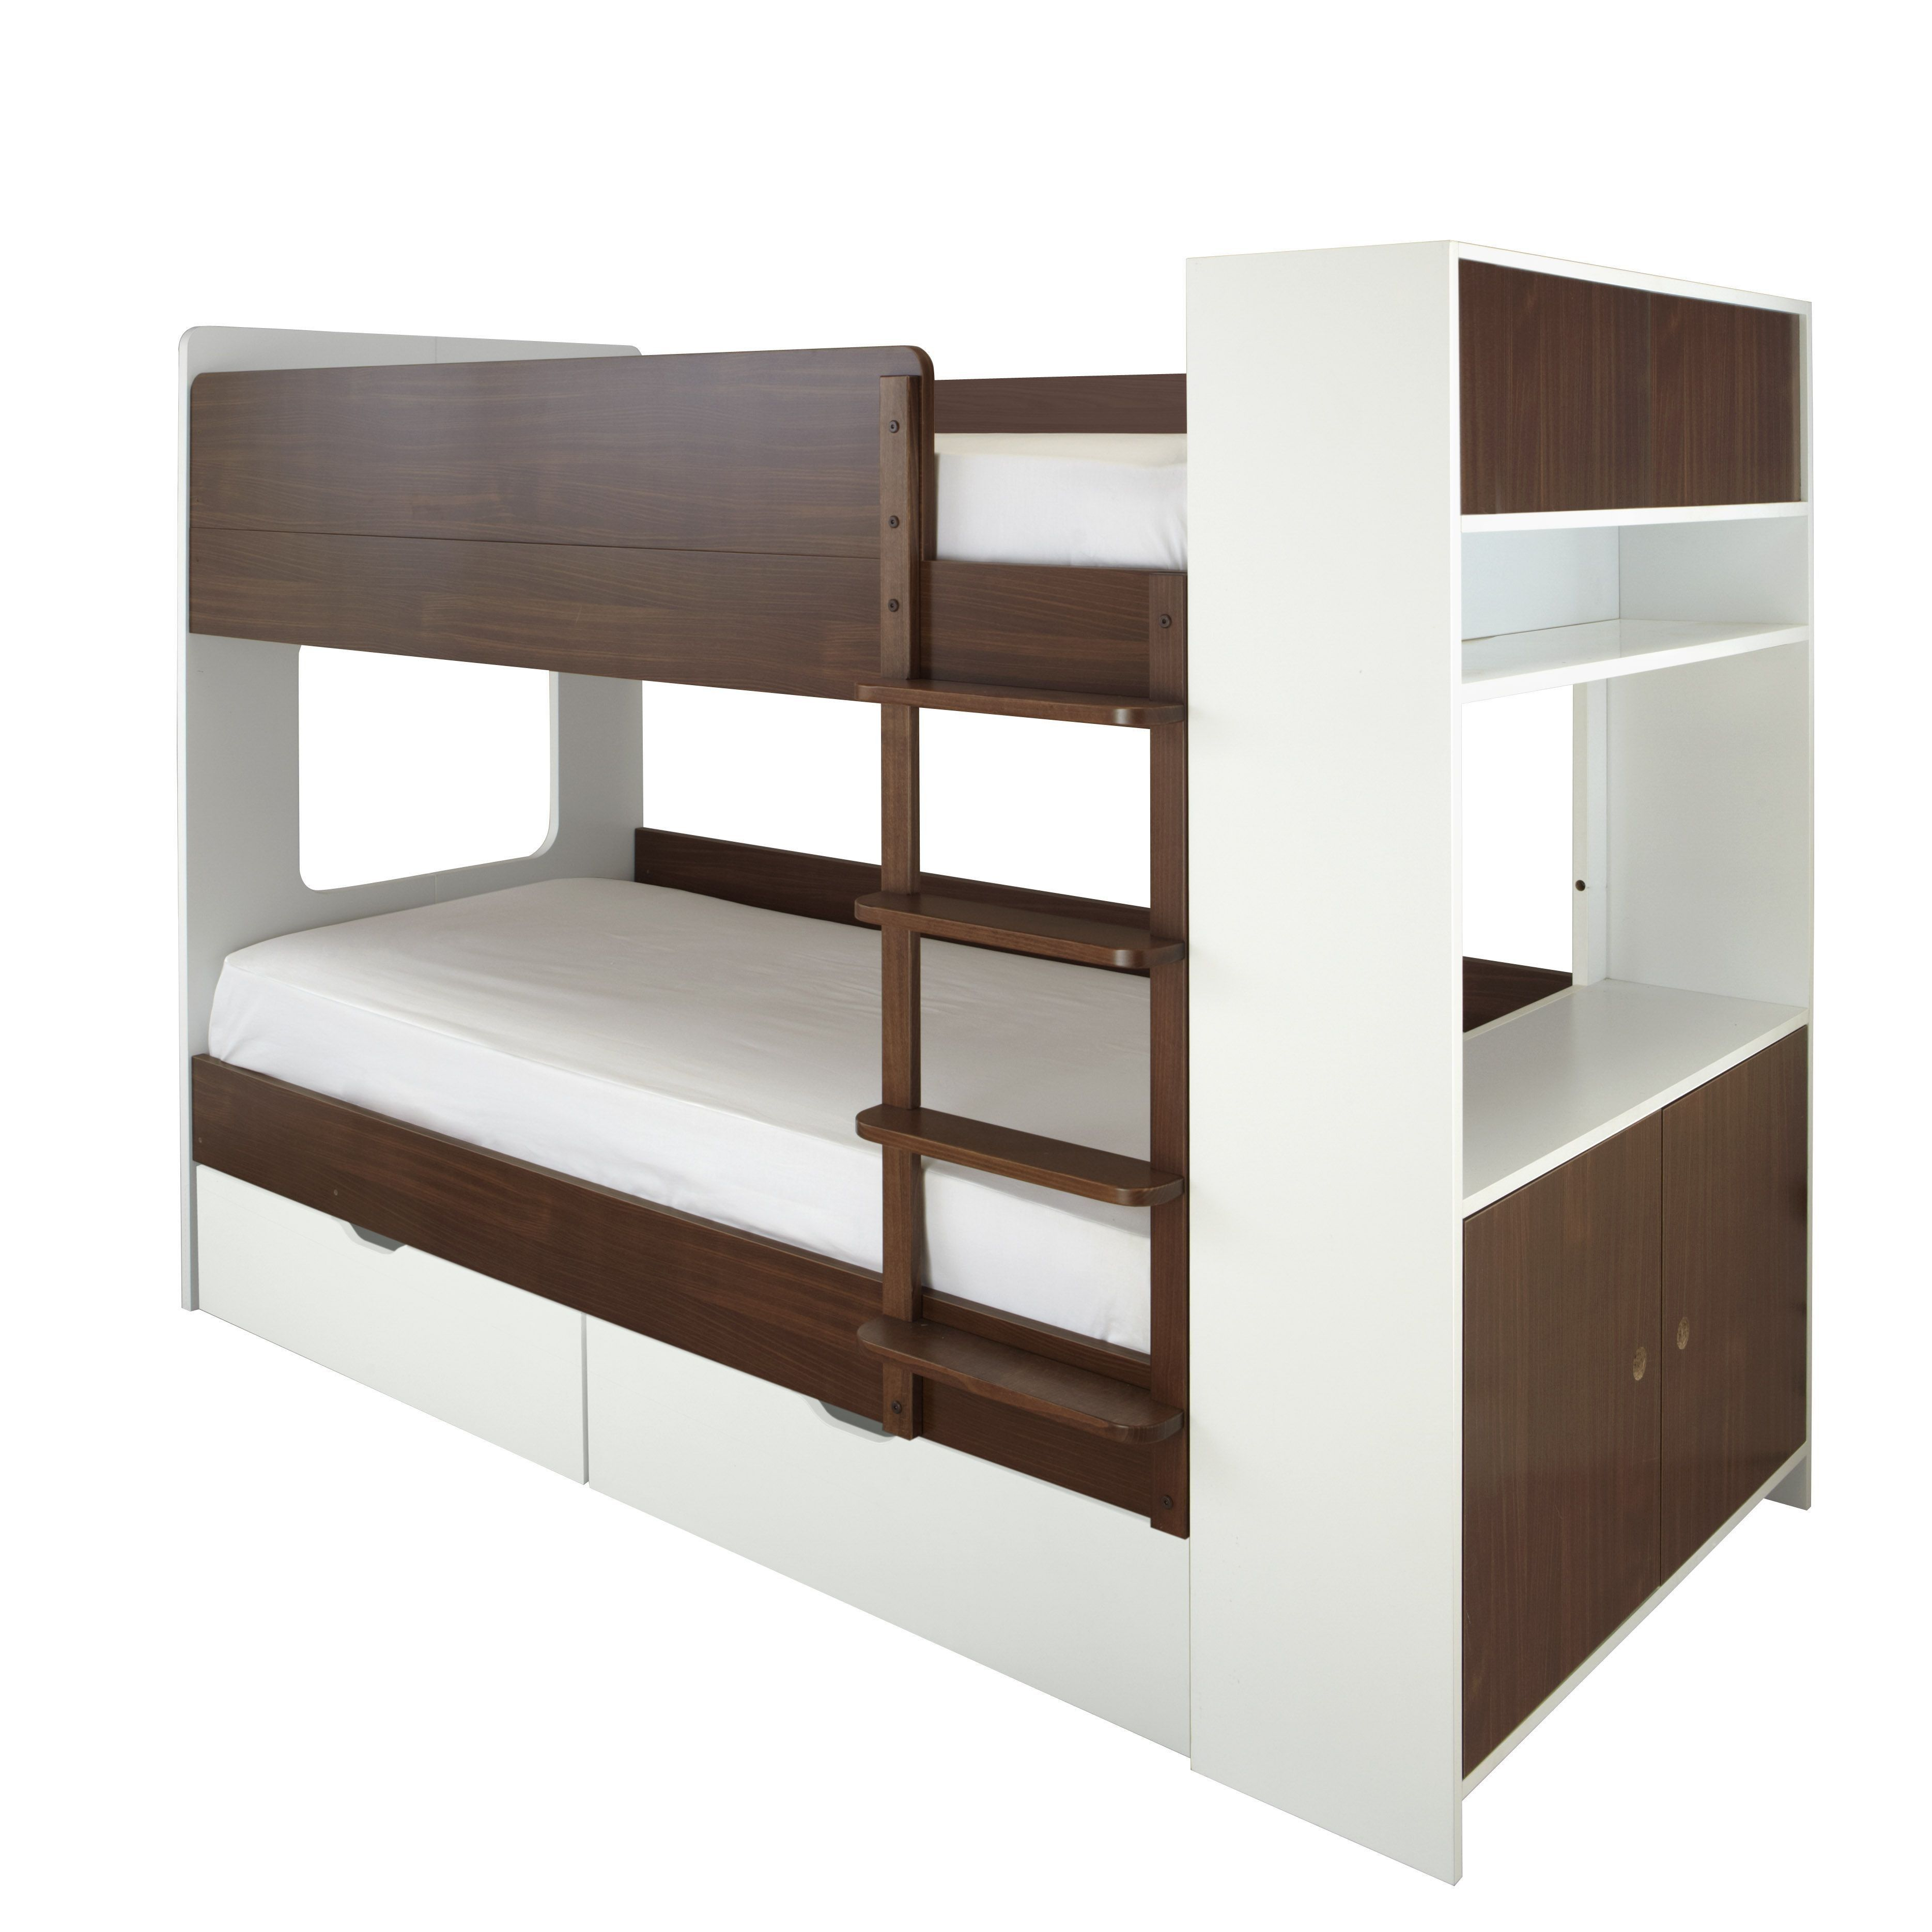 Coco Storgae Bunk A Sleek And Modern Children S Bunk Bed Full Sized Bed With Lots Of